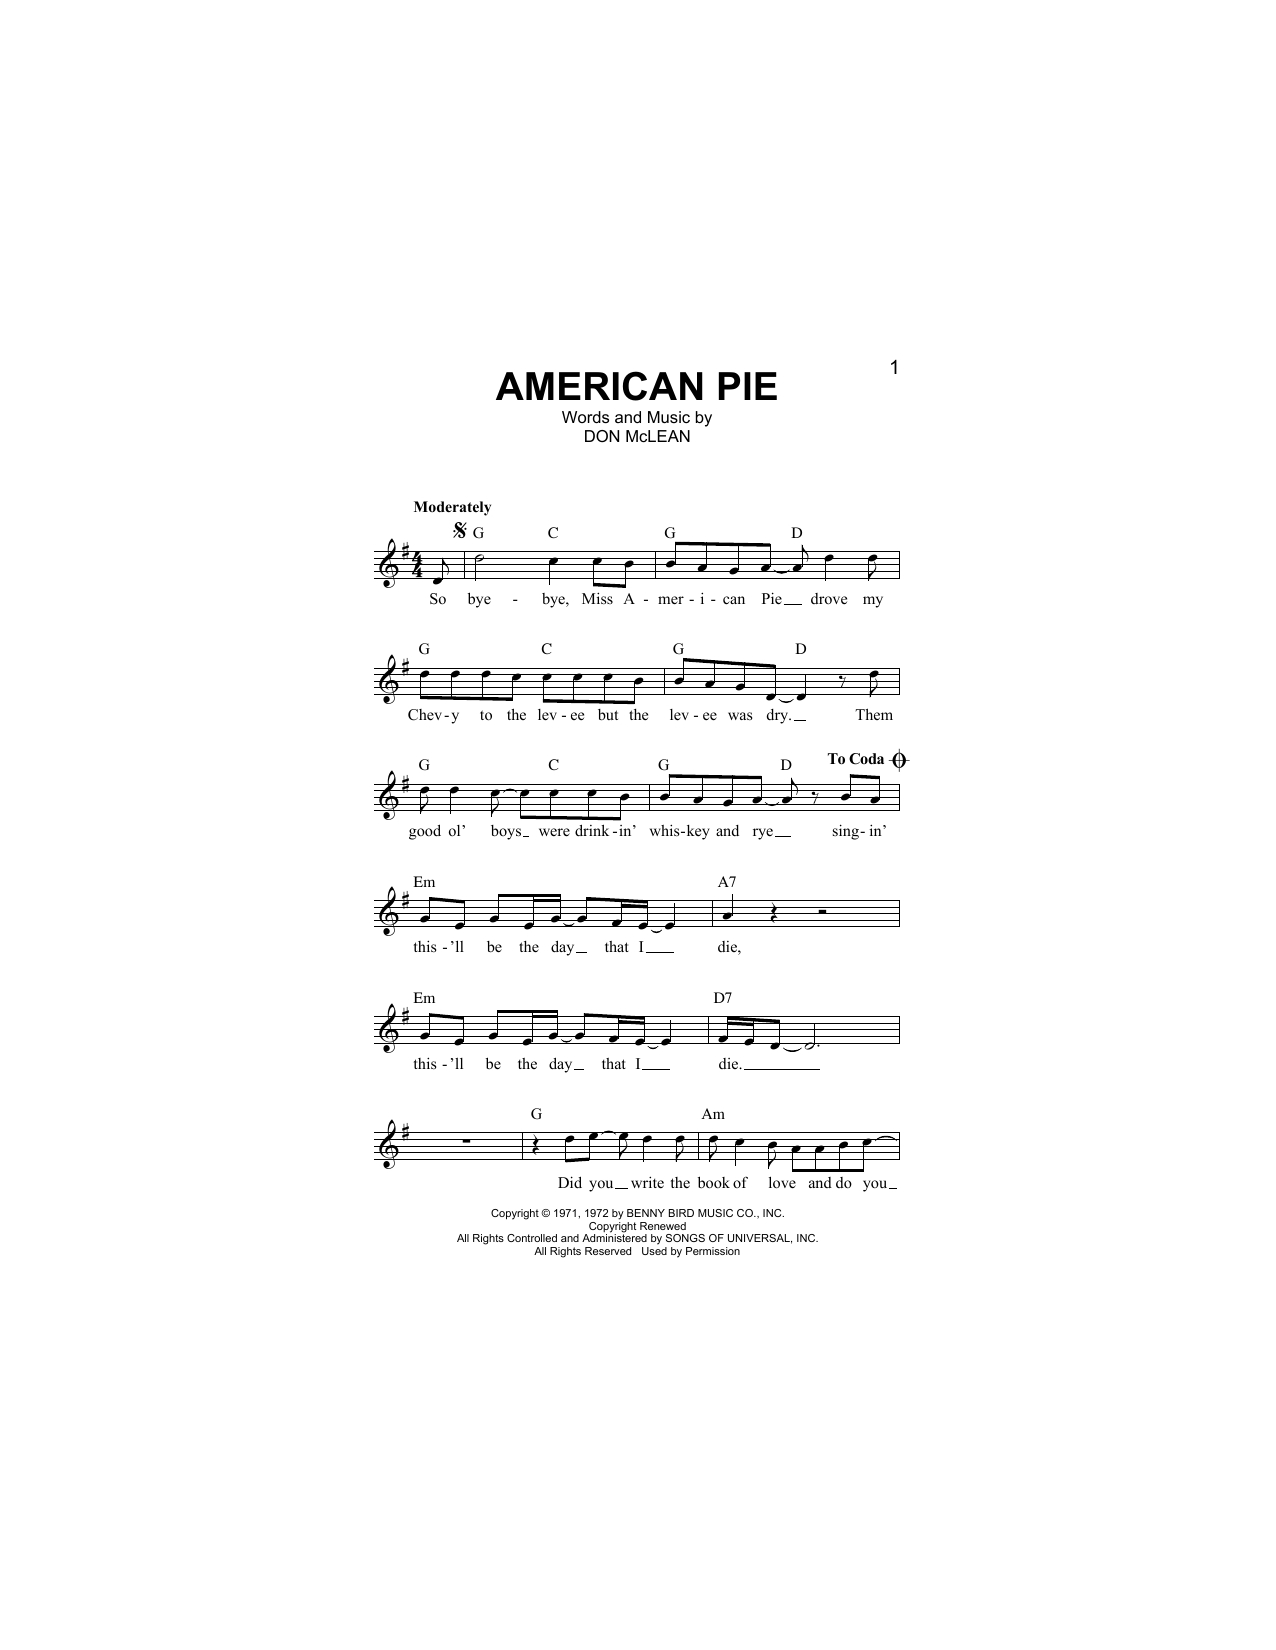 Sheet music digital files to print licensed don mclean digital american pie hexwebz Gallery